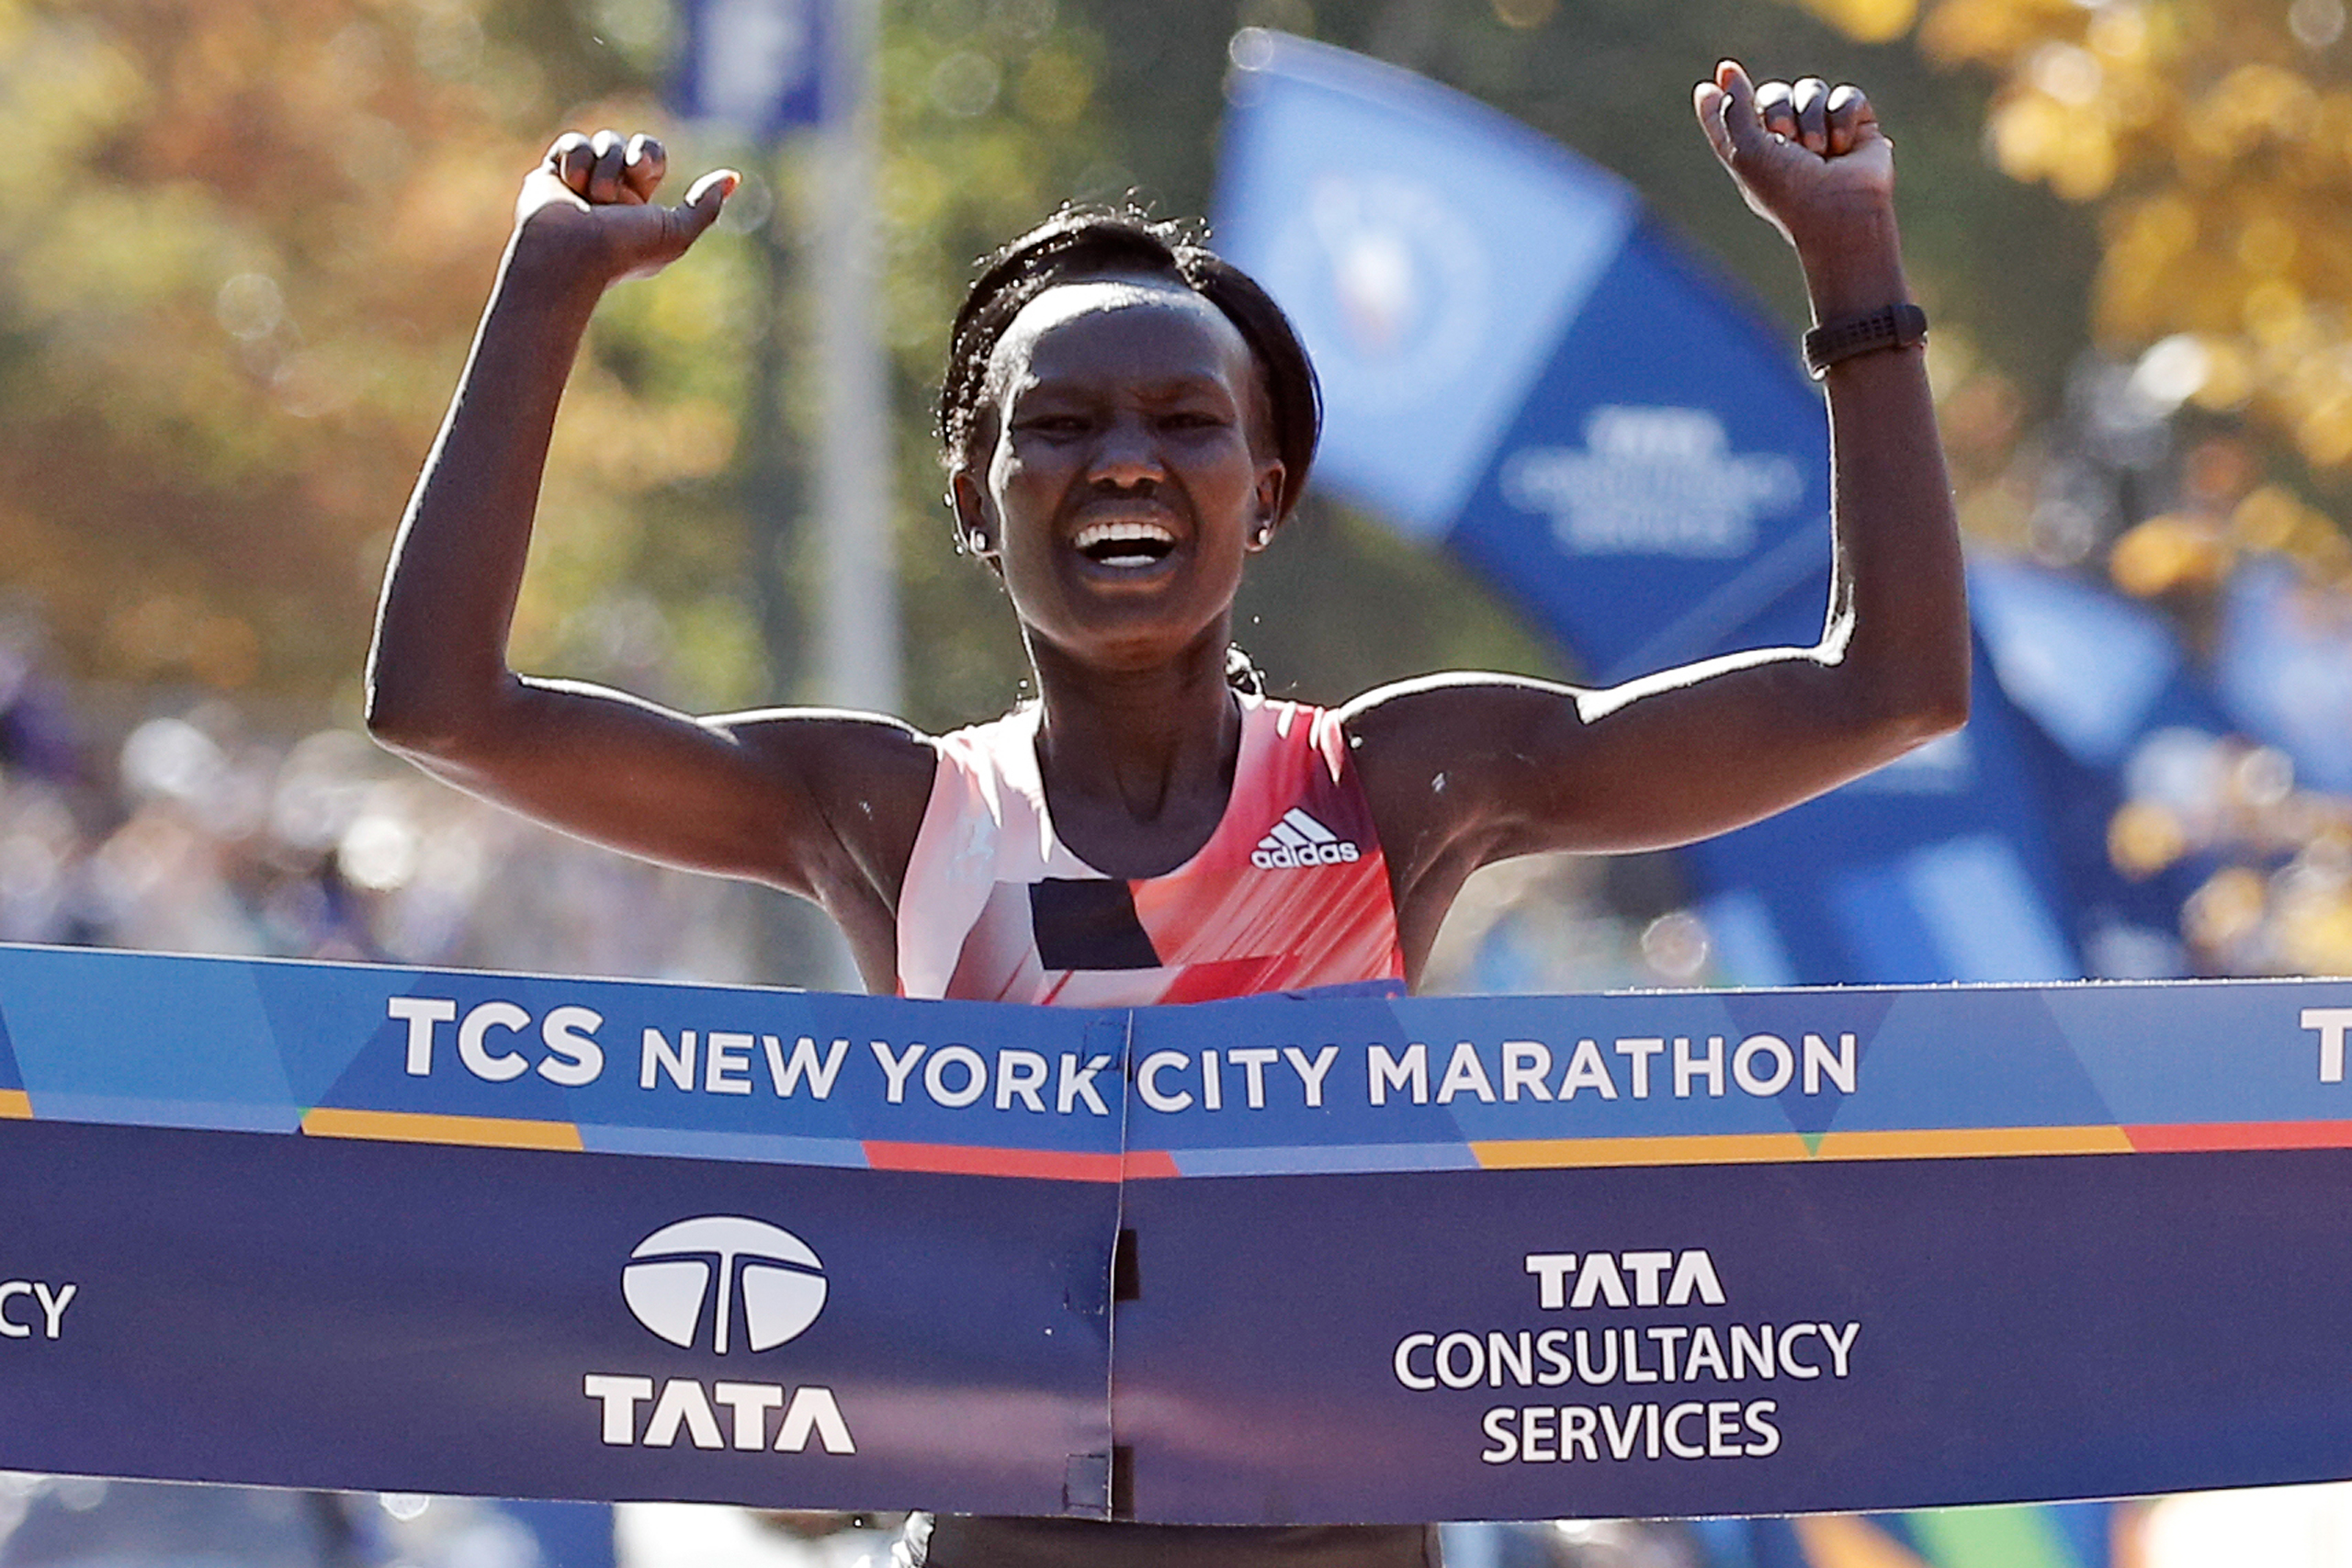 Mary Keitany of Kenya crosses the finish line to win the women's field of the 2016 New York City Marathon in New York City on Nov. 6, 2016.